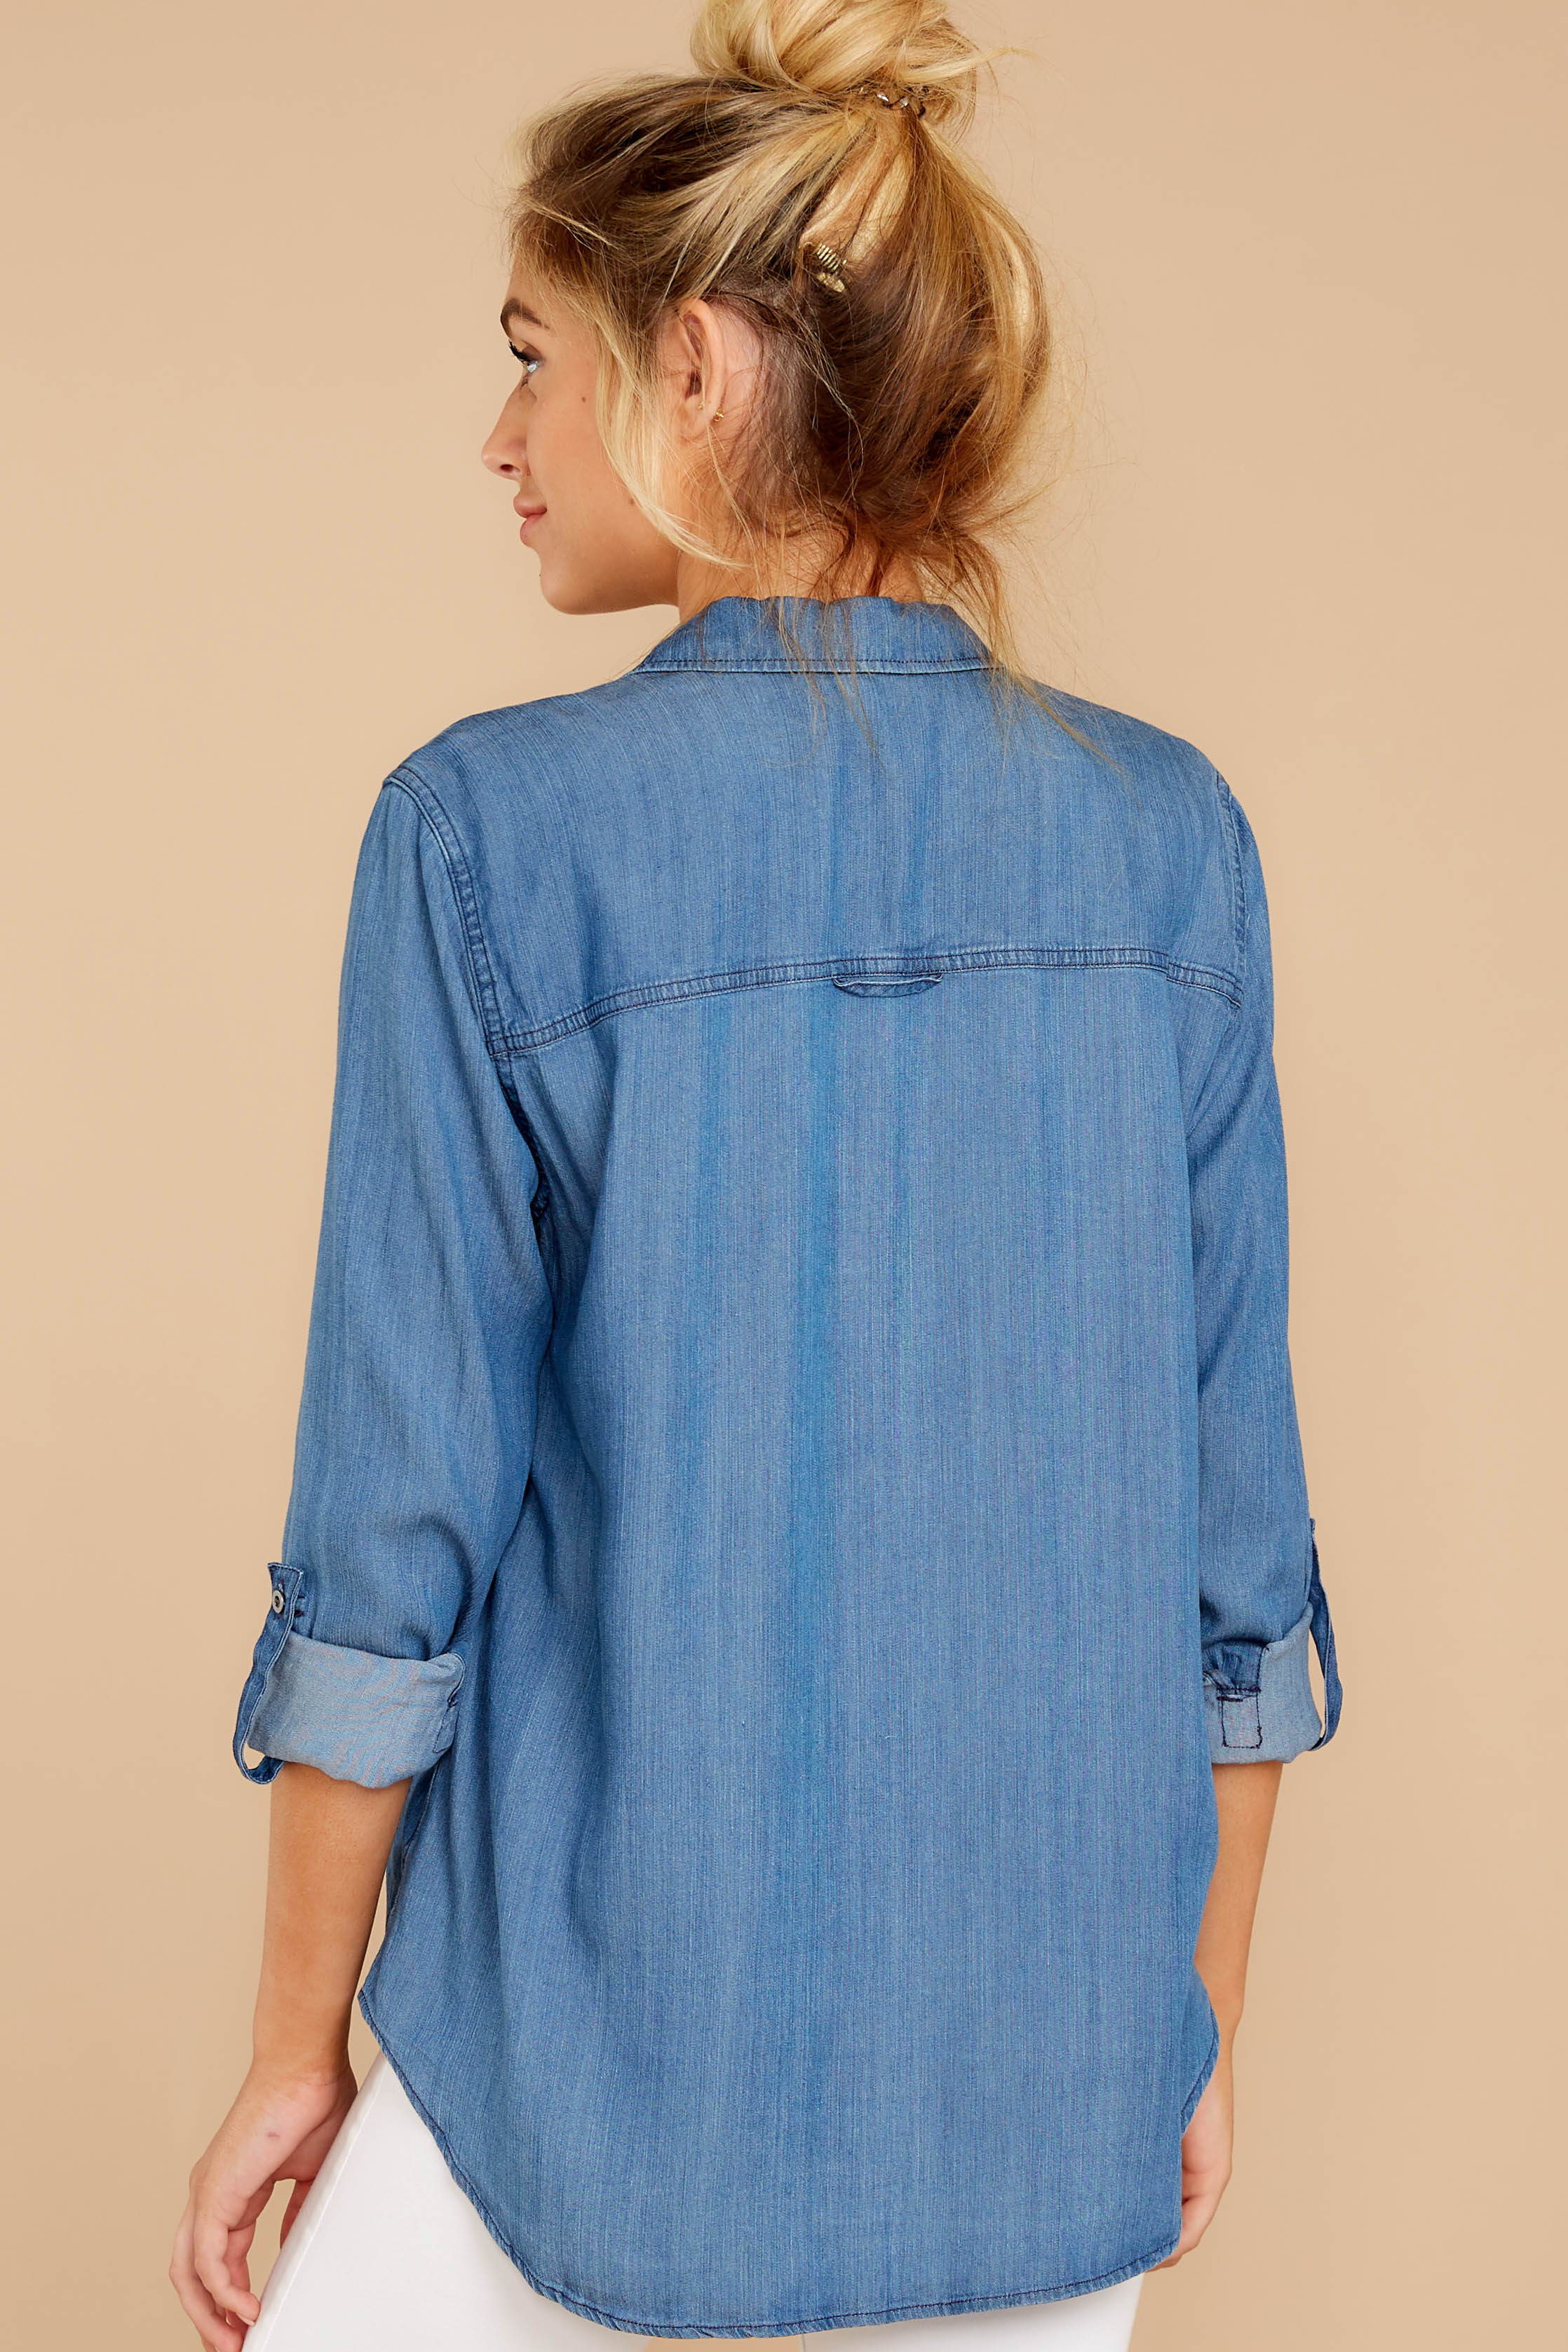 4 Wander Free Chambray Button Up Top at reddress.com